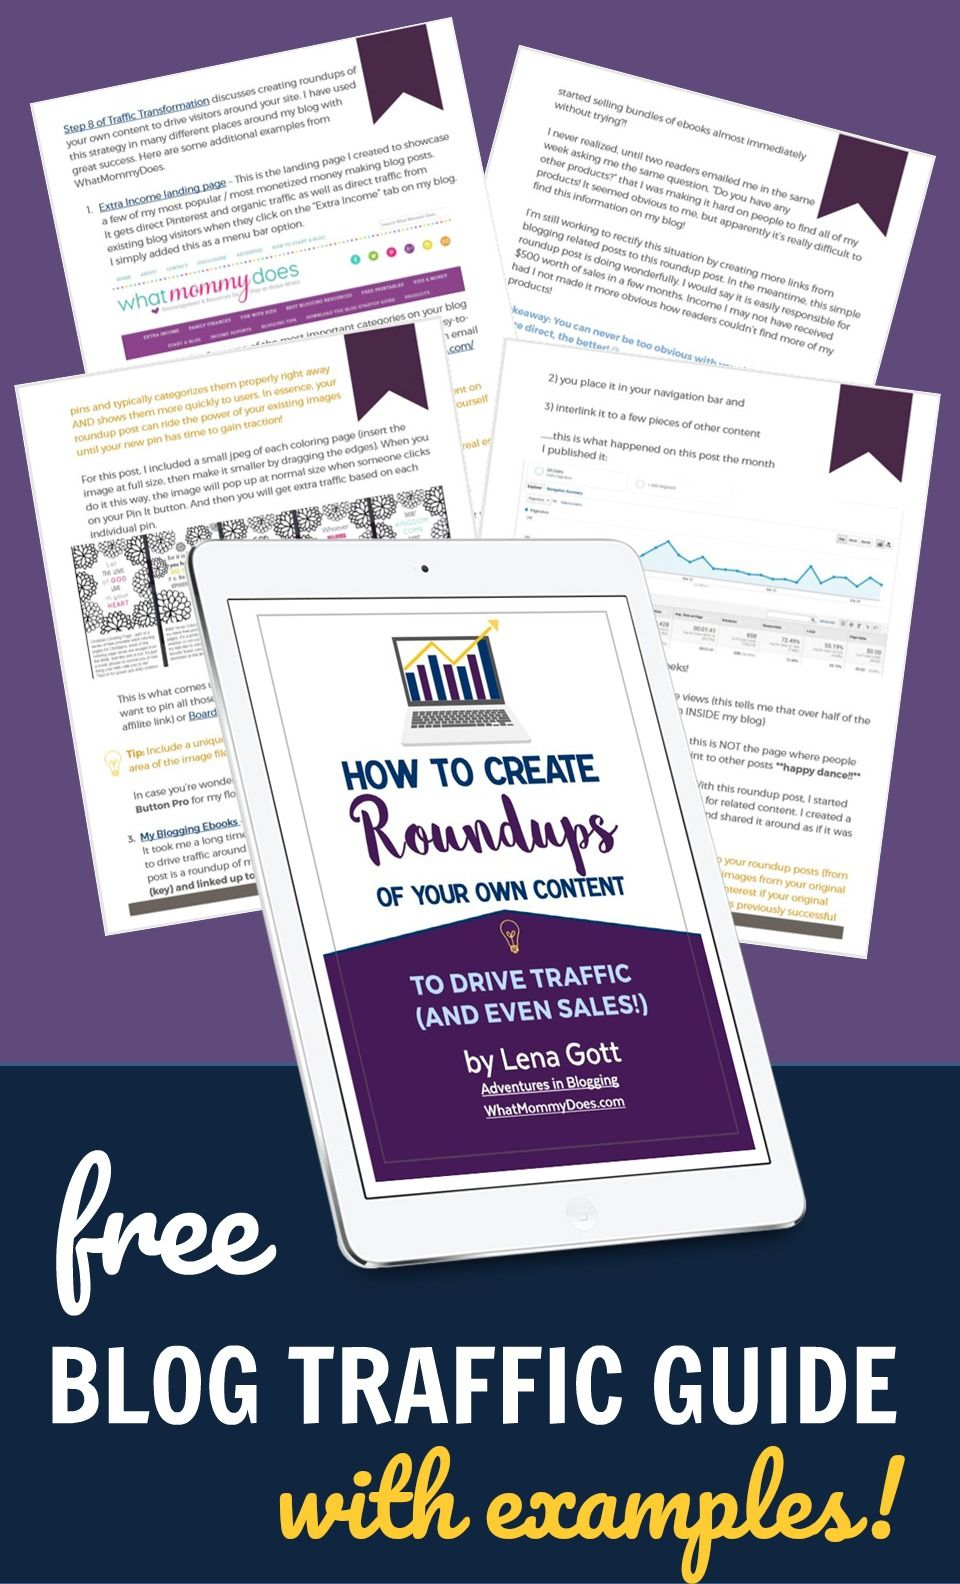 How To Increase Your Blog Traffic Using Content You Already Have Free Traffic Guide Blog Traffic Free Blog Traffic How To Start A Blog